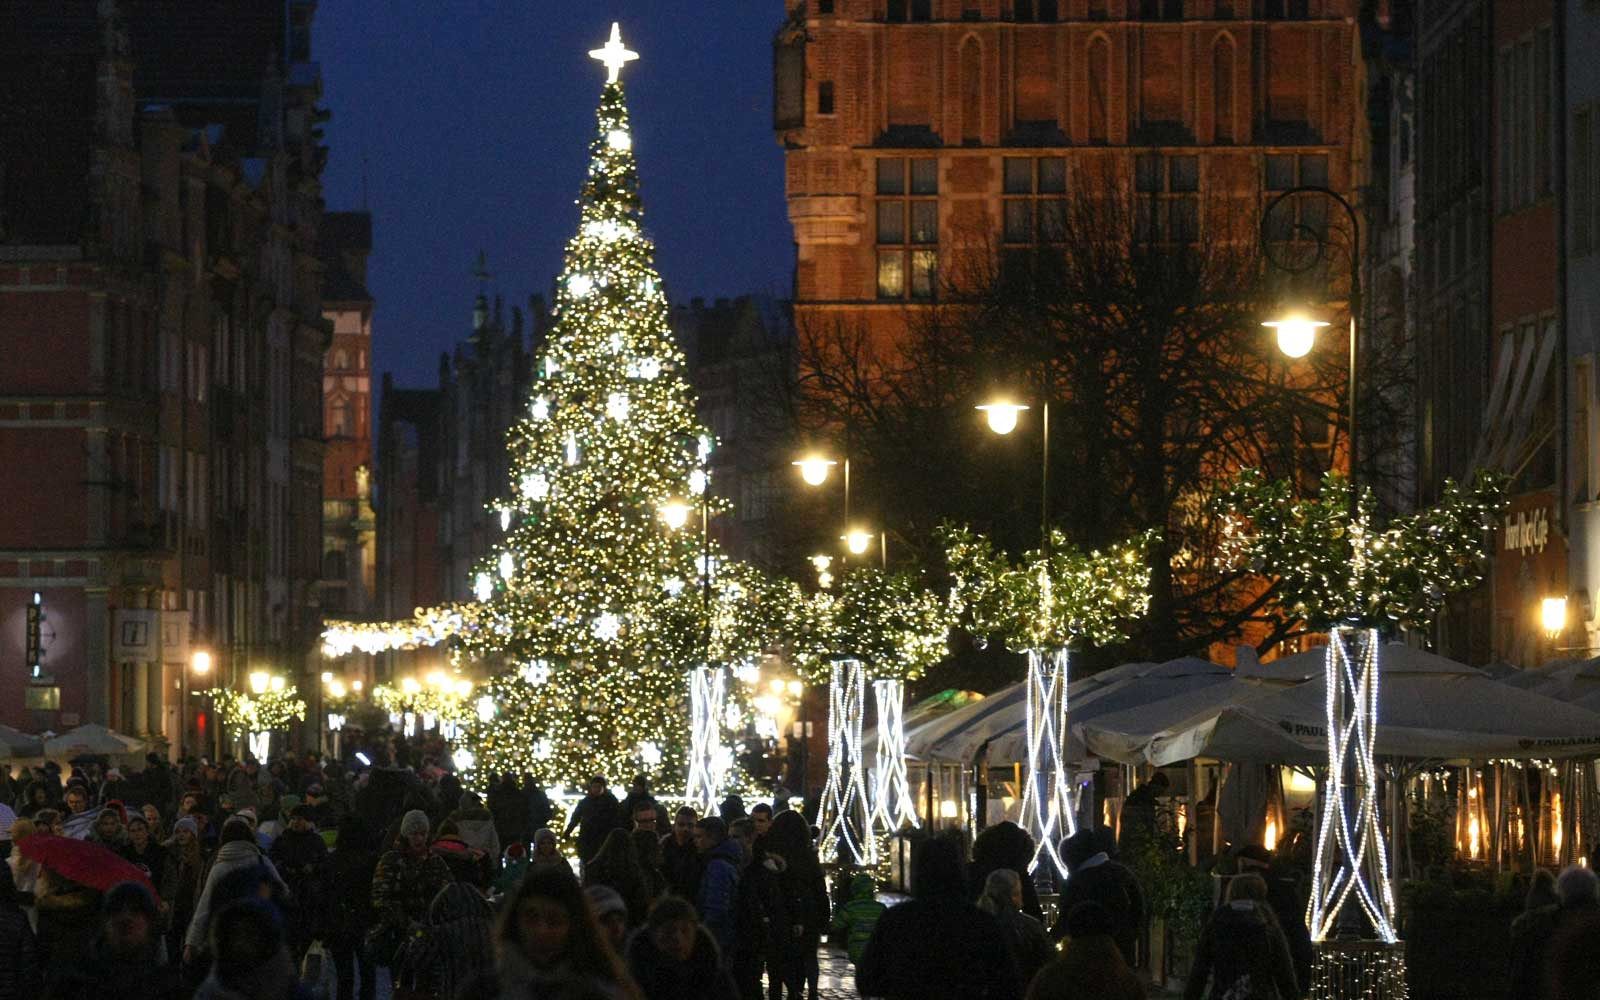 Christmas decorations in Gdansk, Poland